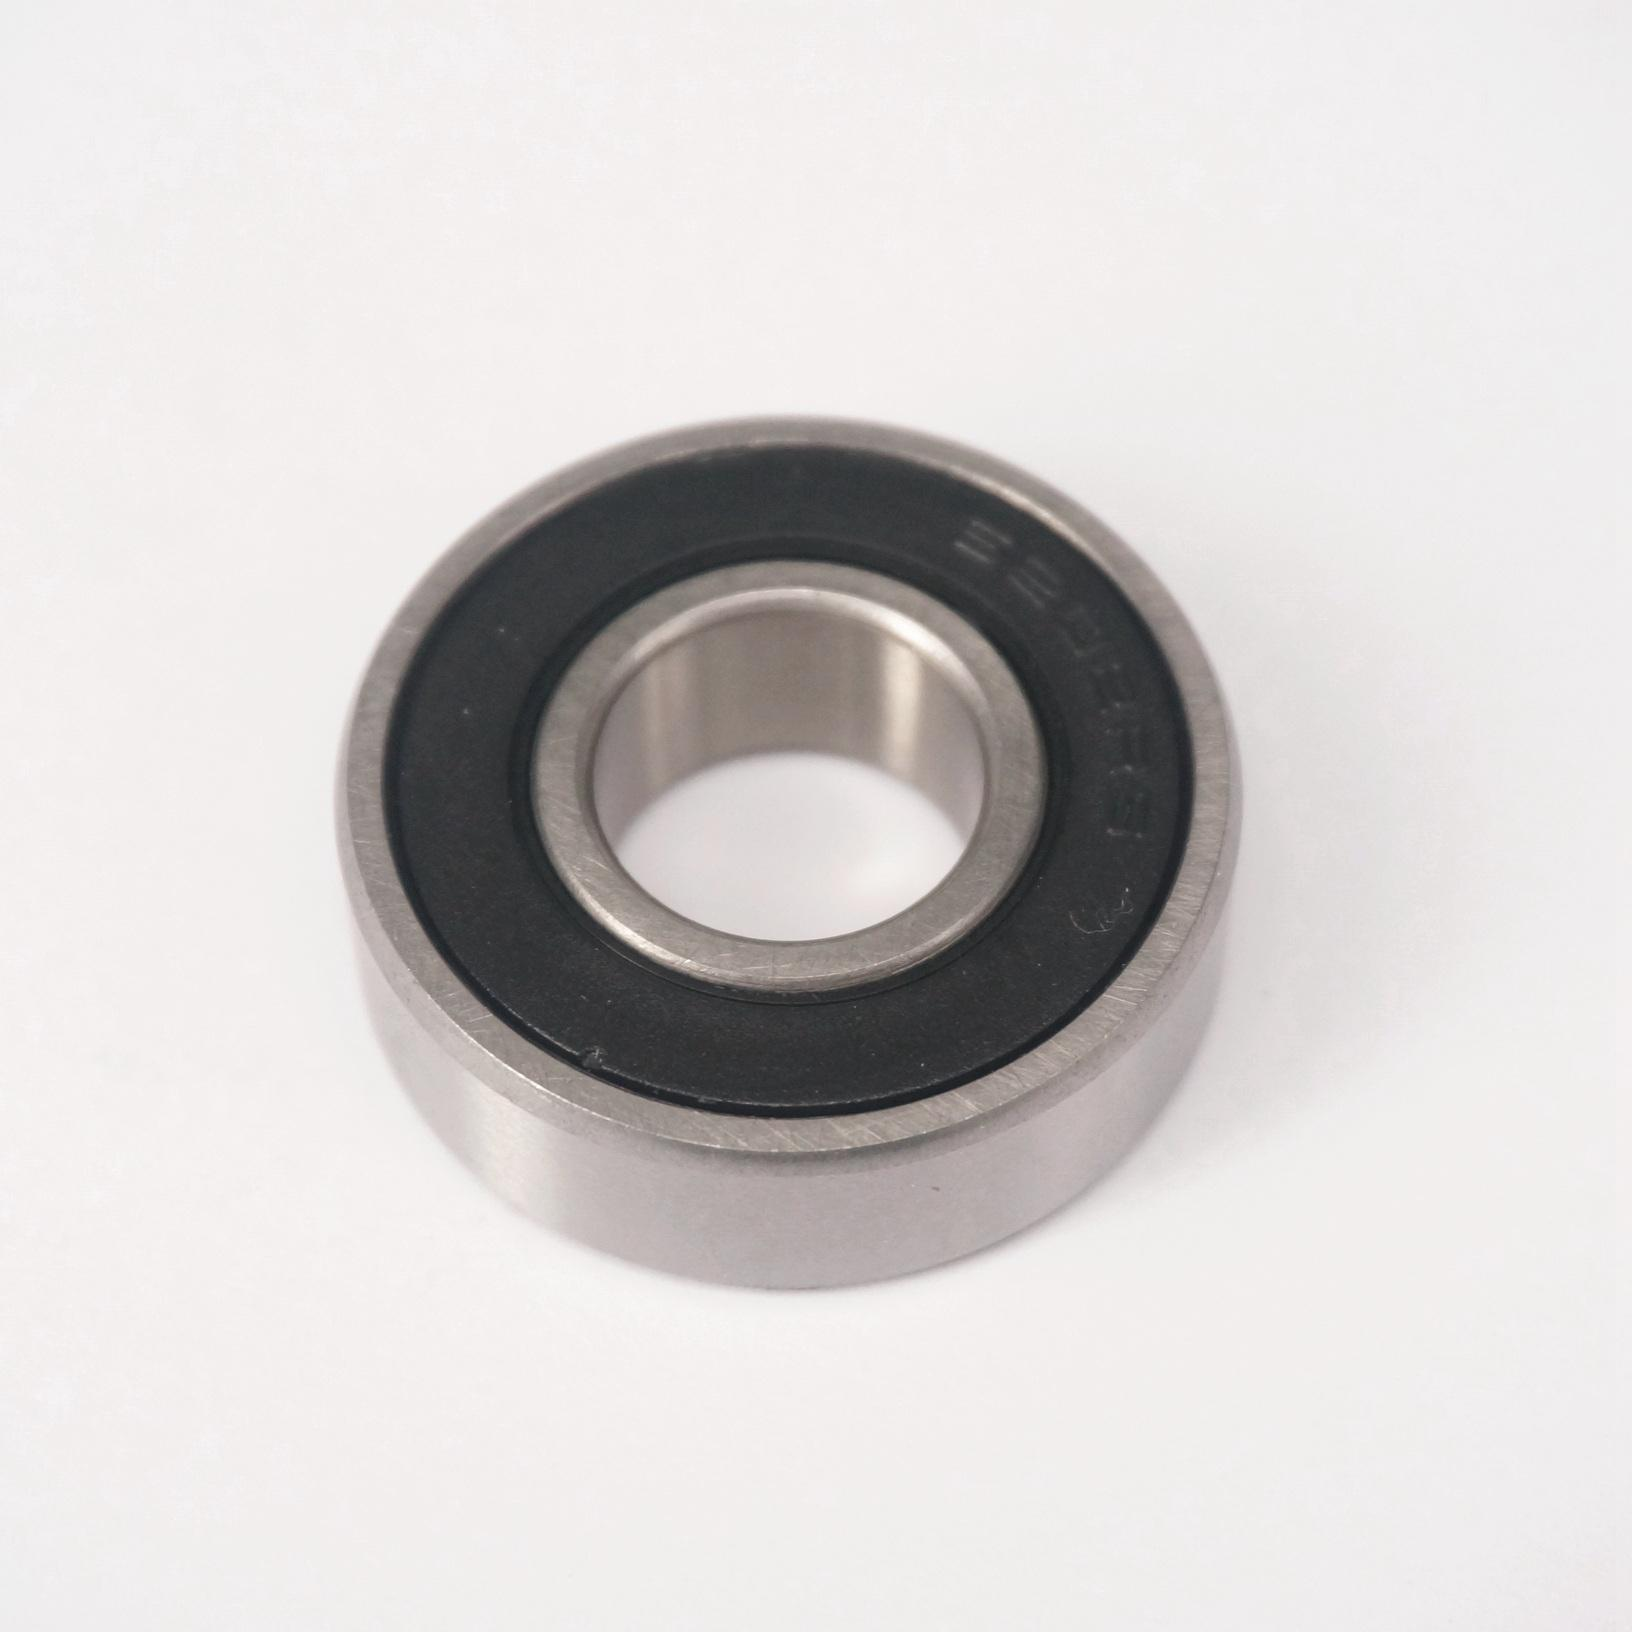 6303-2RS 17x47x14mm ABEC1 Thin-wall Shielded Deep Groove Ball Bearing 500rpm